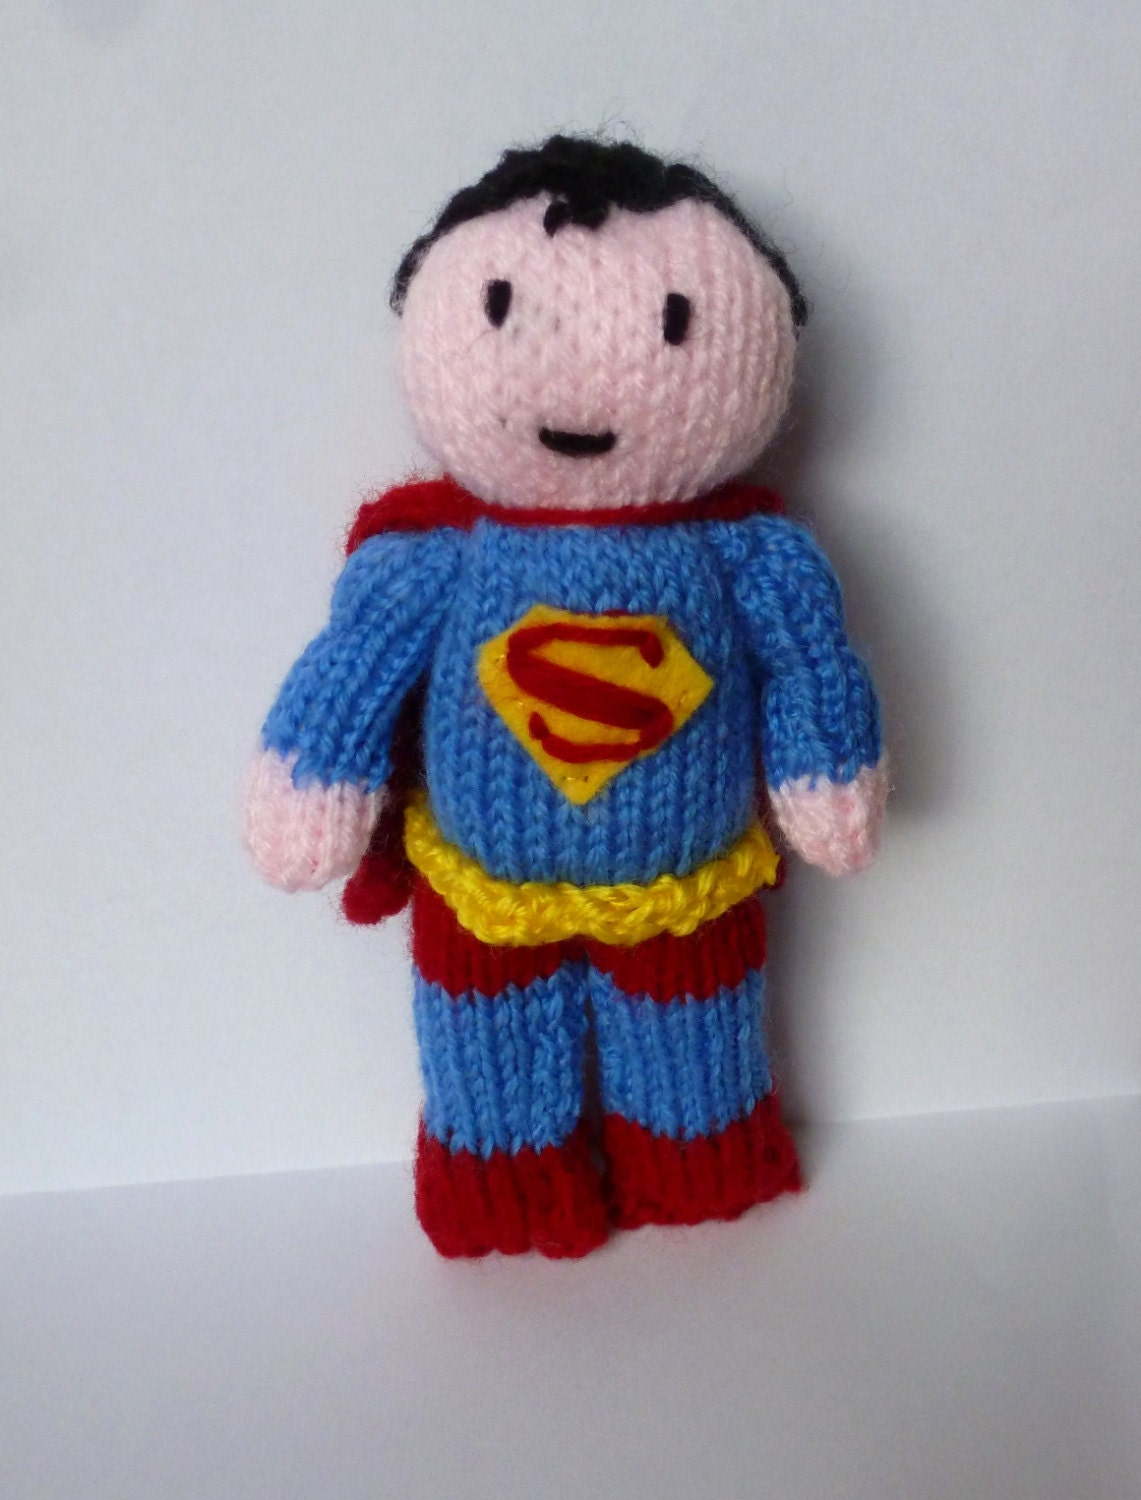 Superman knitted doll